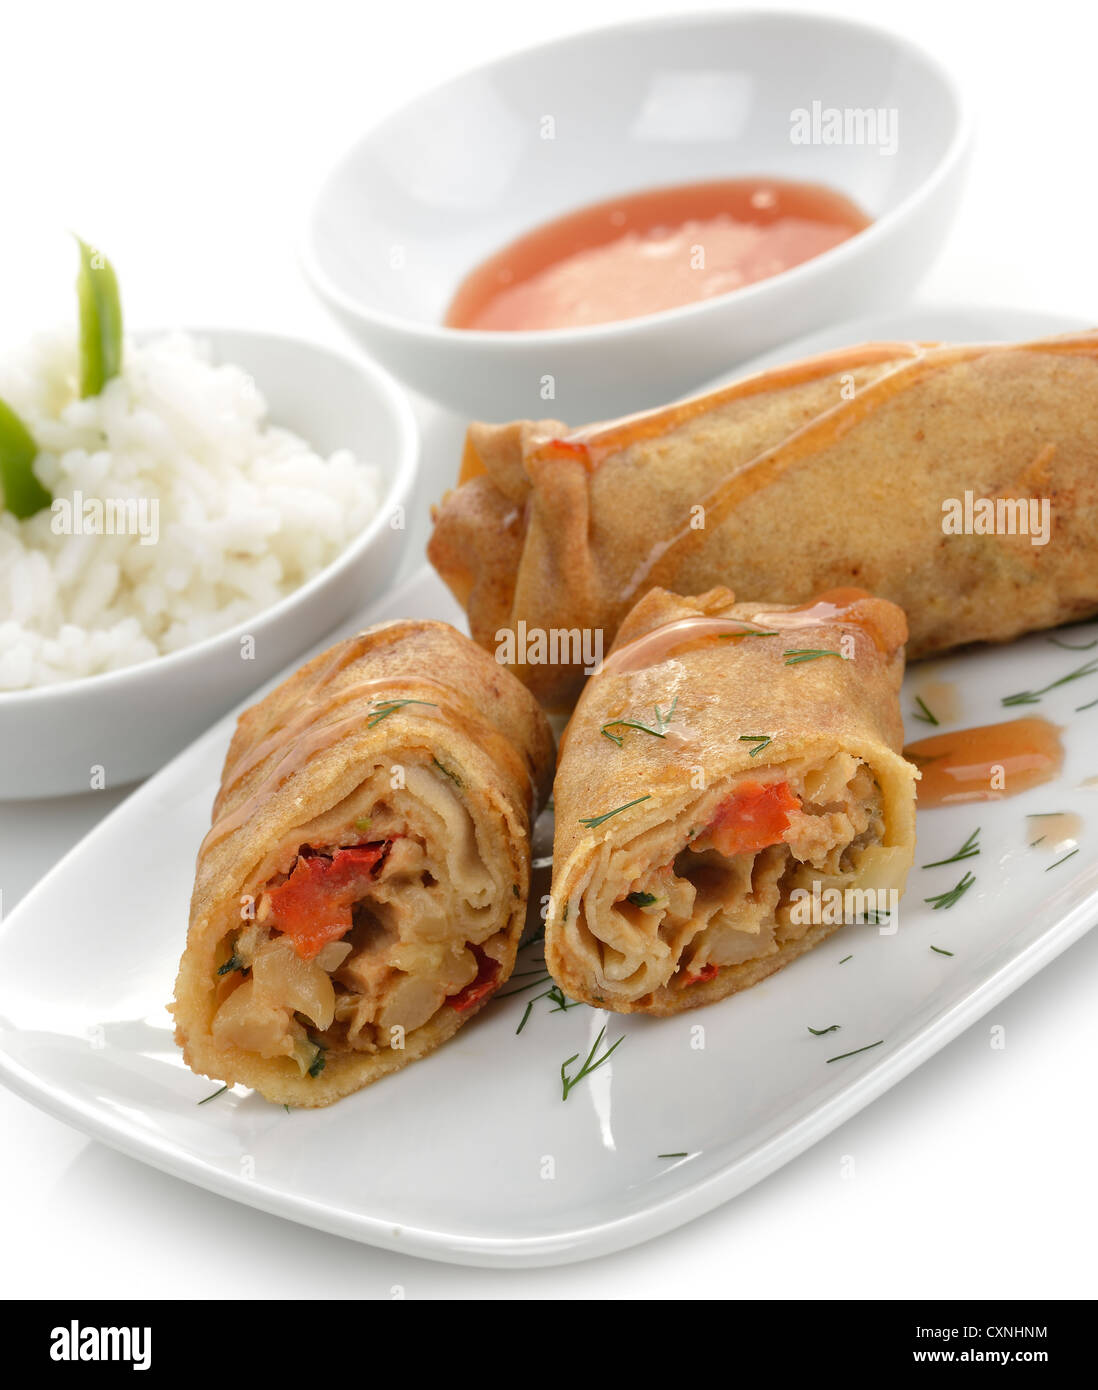 Fried Chicken Rolls With Rice And Sauce - Stock Image